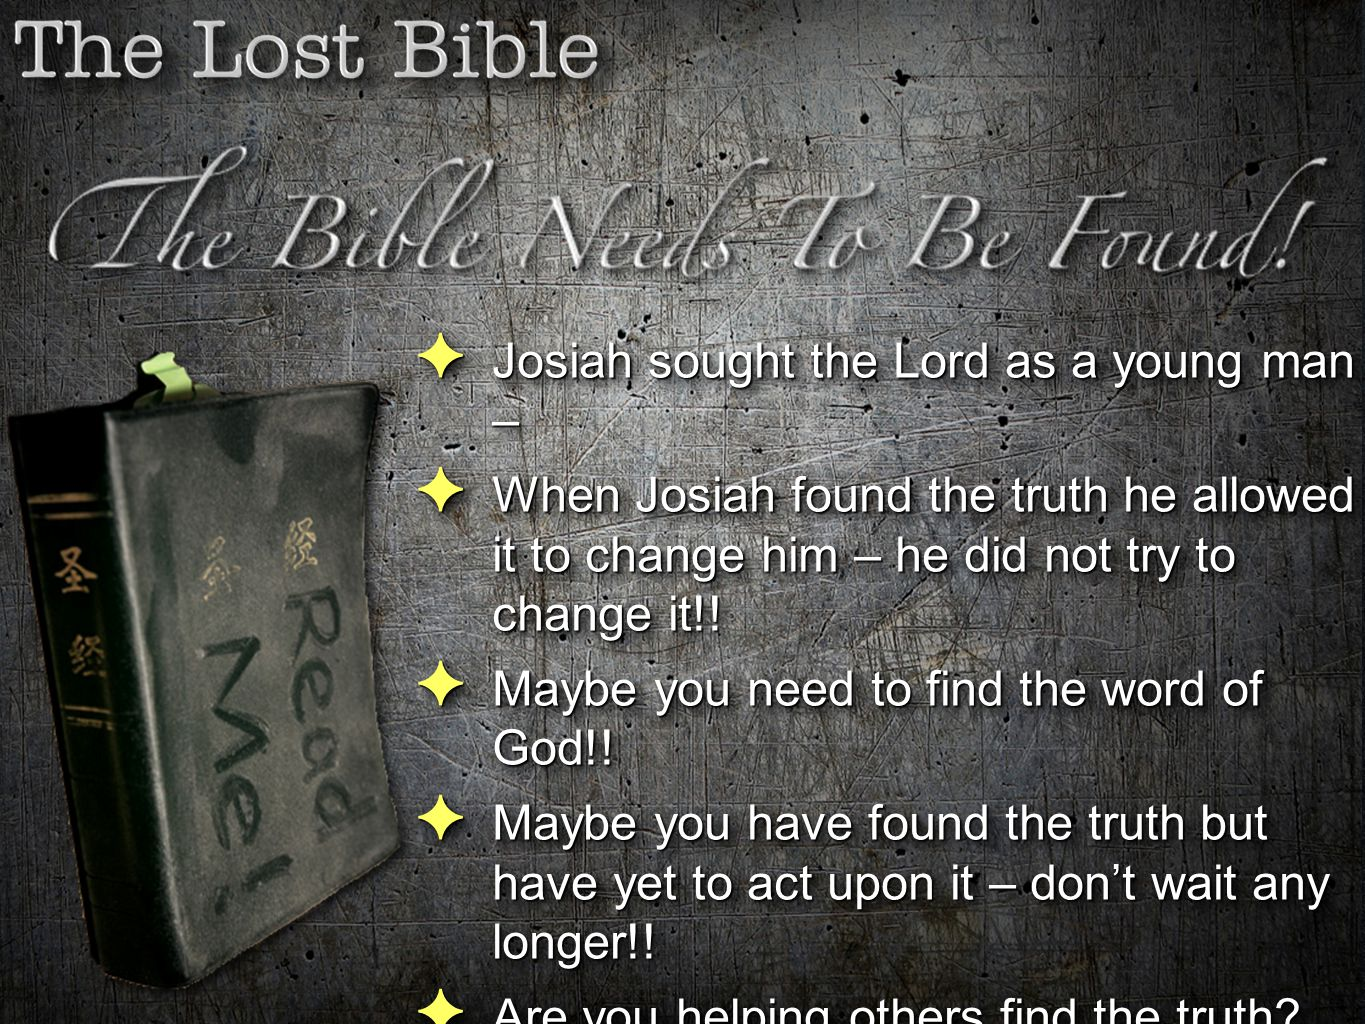 Josiah sought the Lord as a young man –